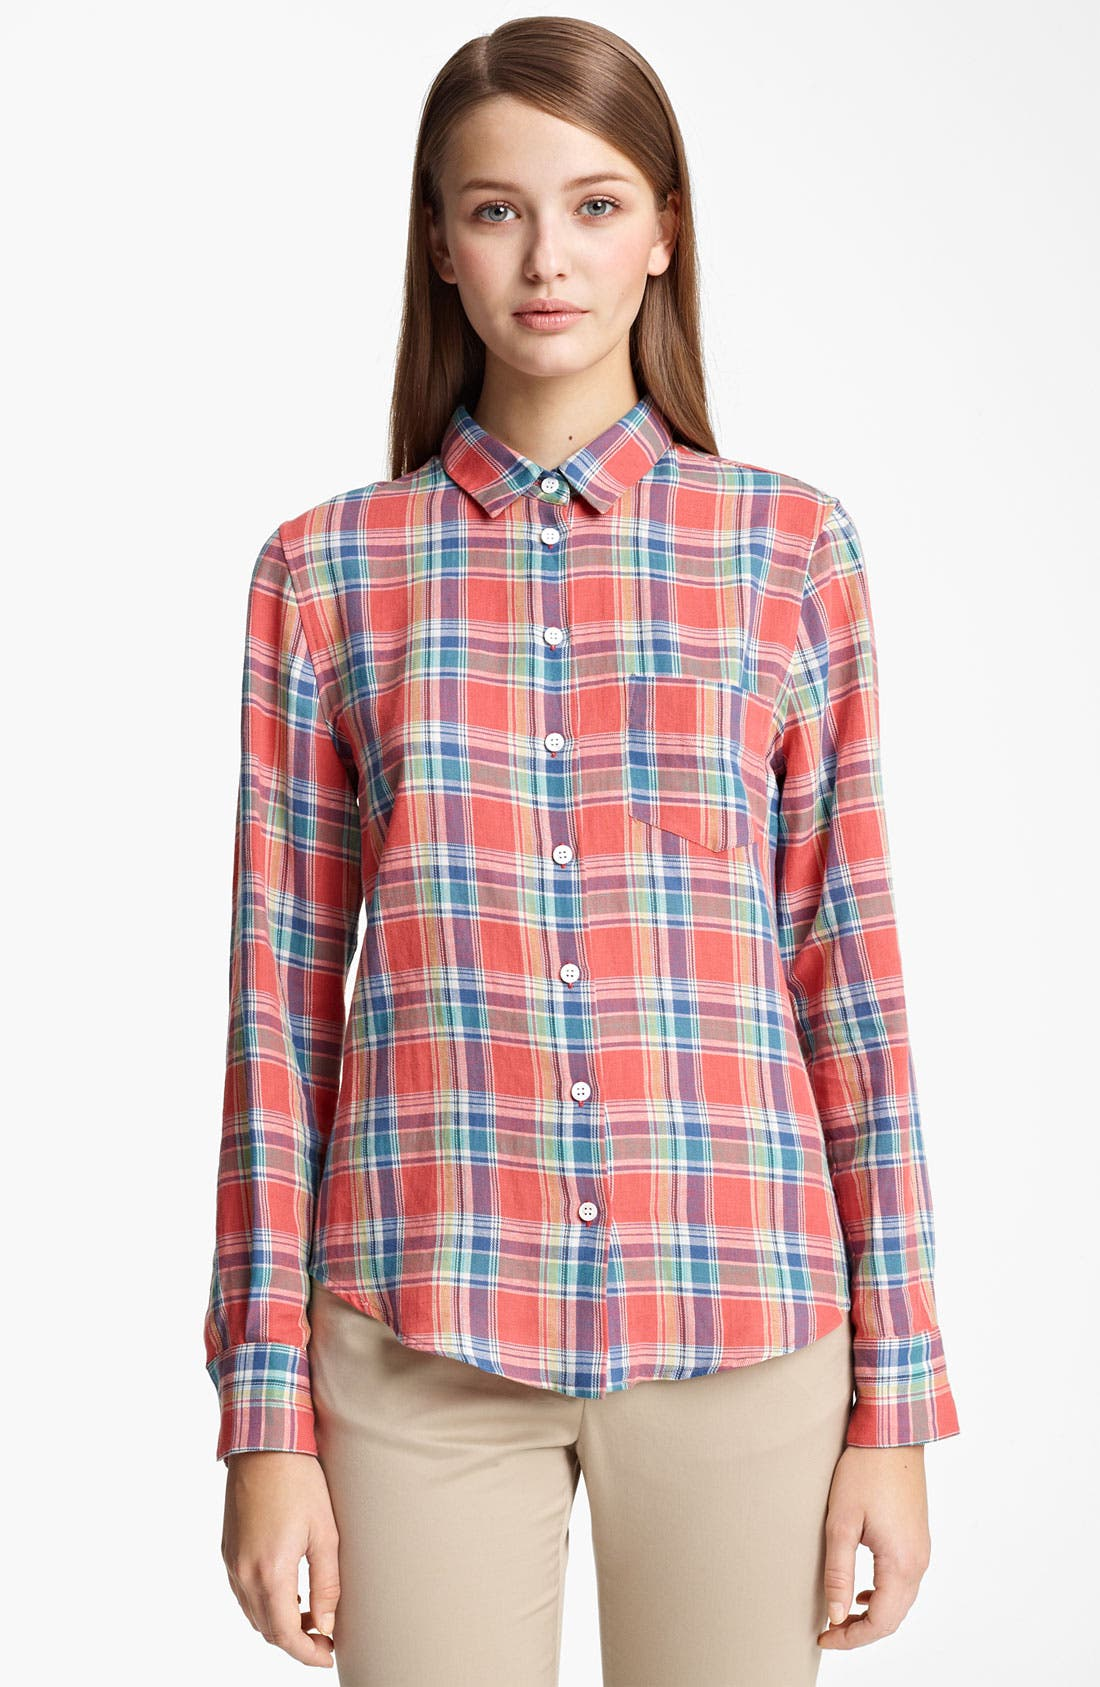 Alternate Image 1 Selected - Band of Outsiders Madras Plaid Shirt